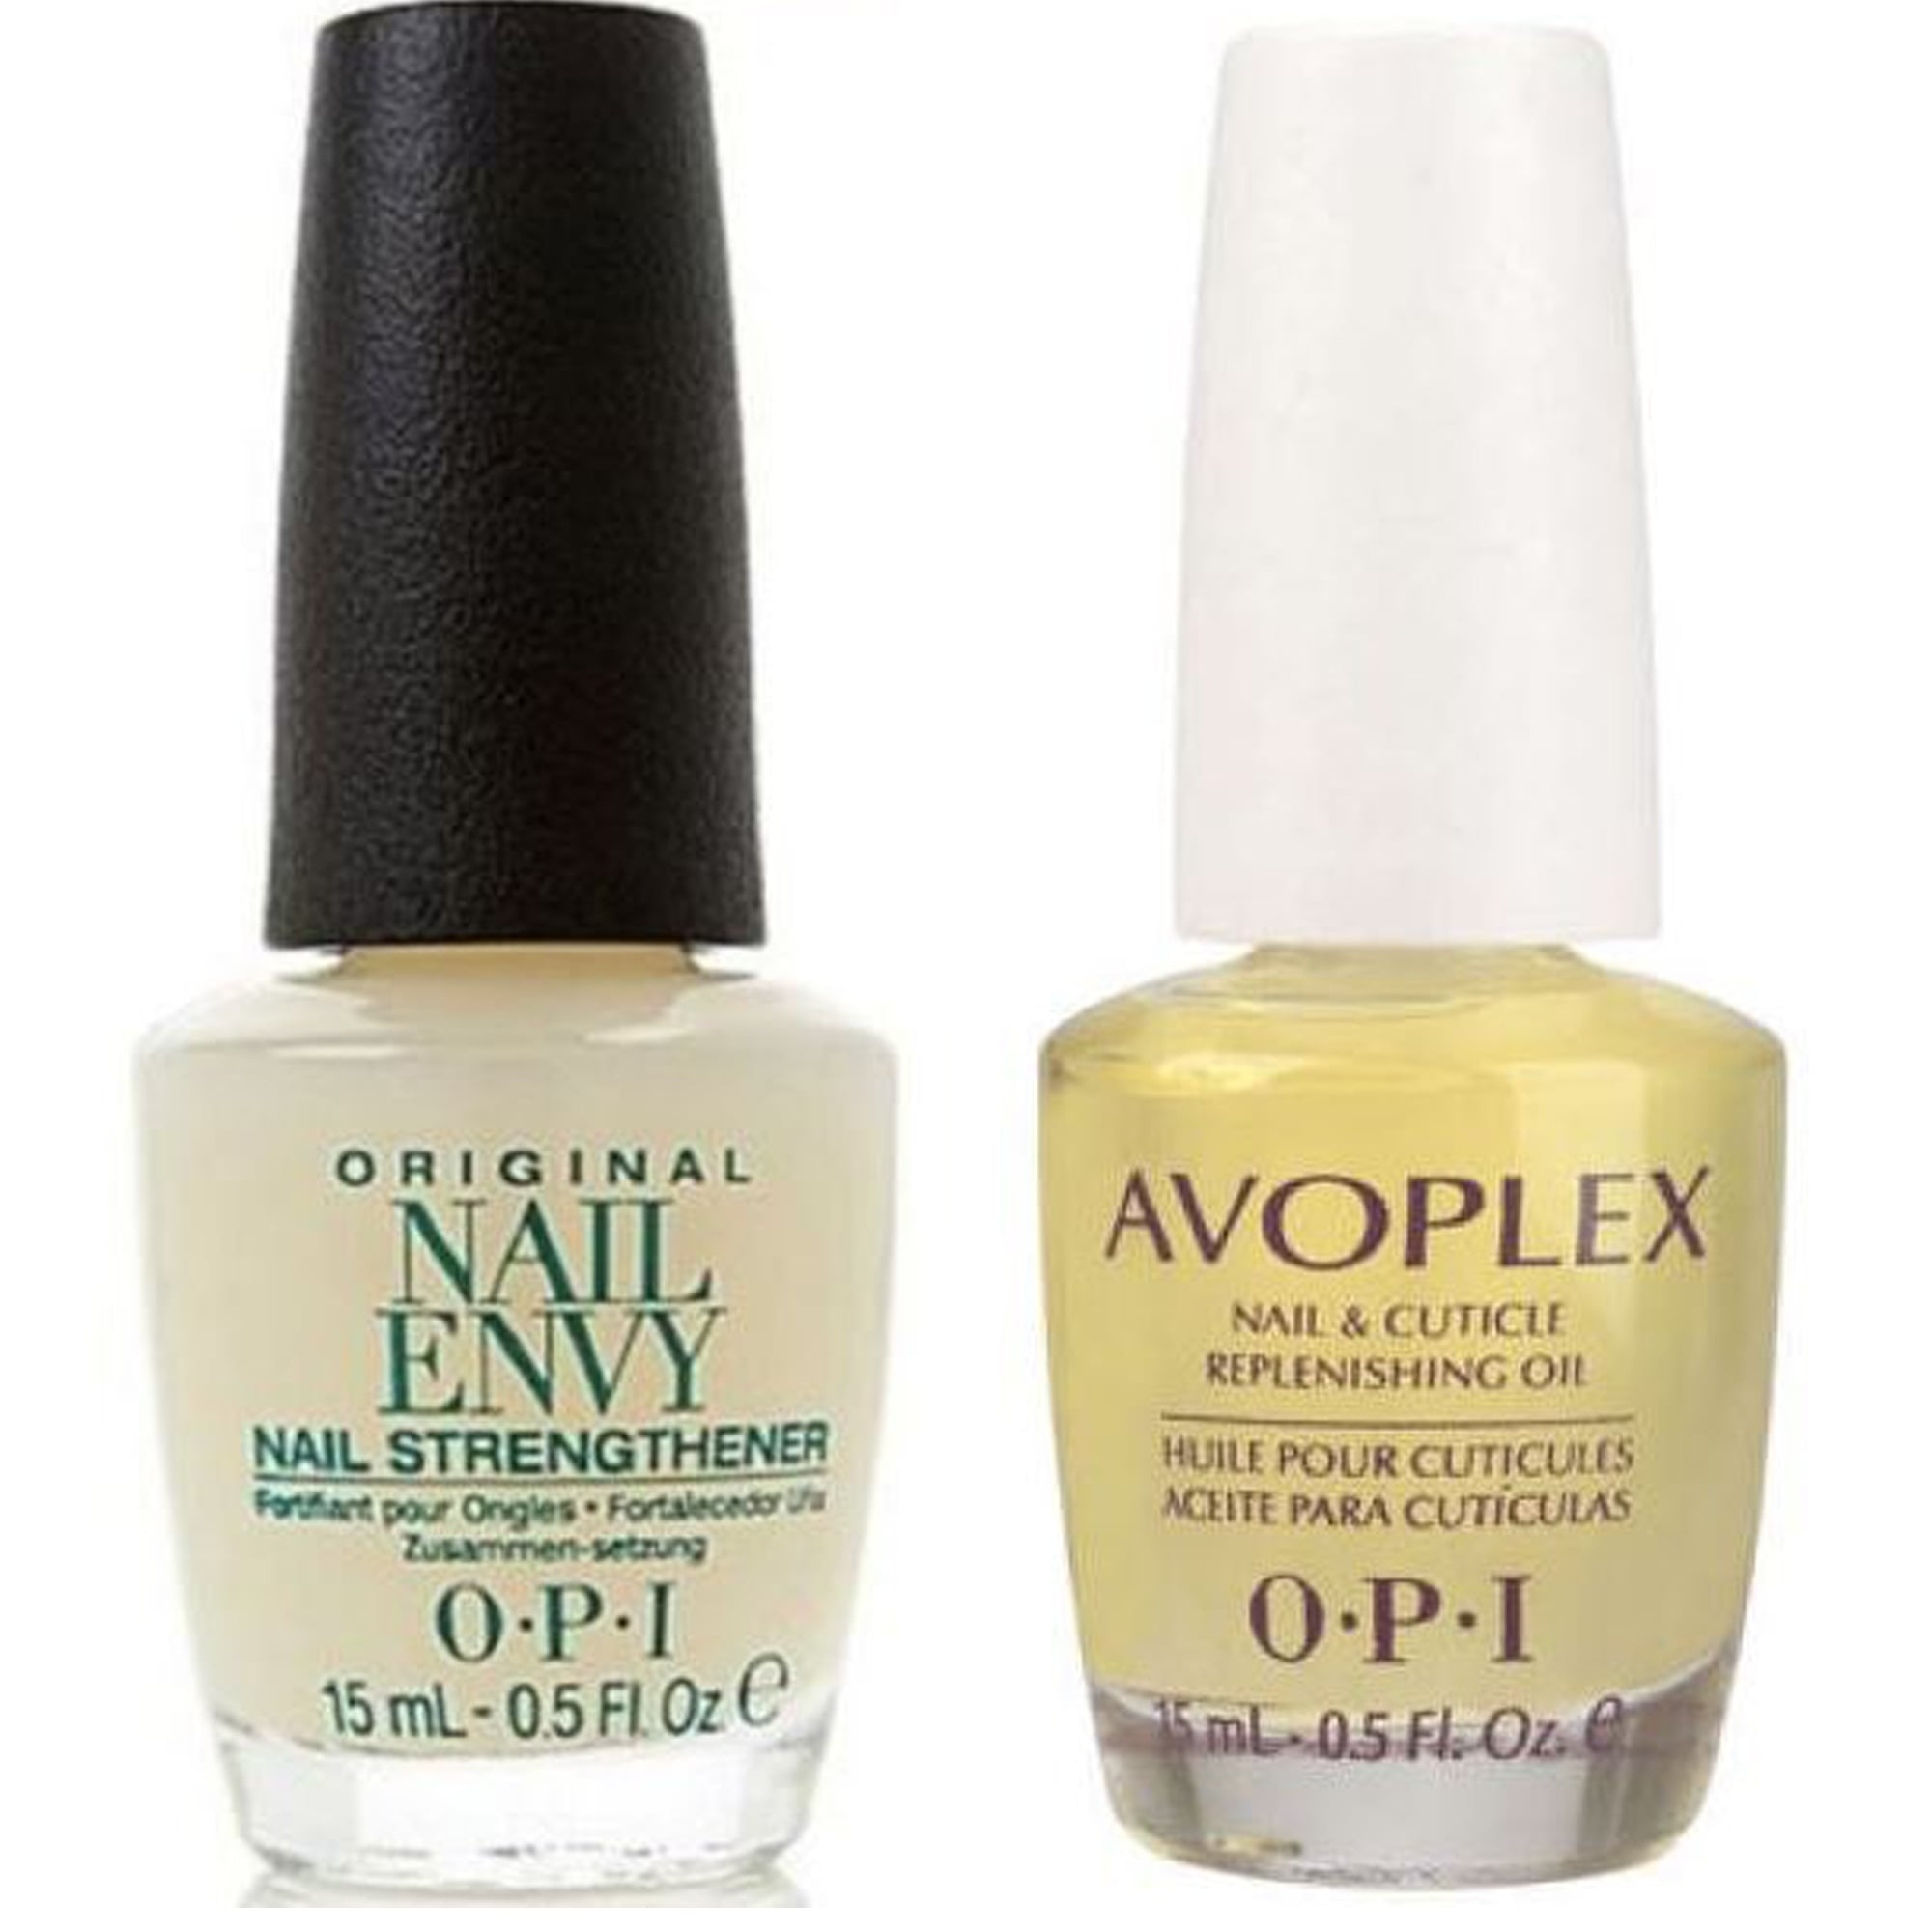 OPI Nail Strengthener Original Formula & Avoplex Cuticle Oil Duo